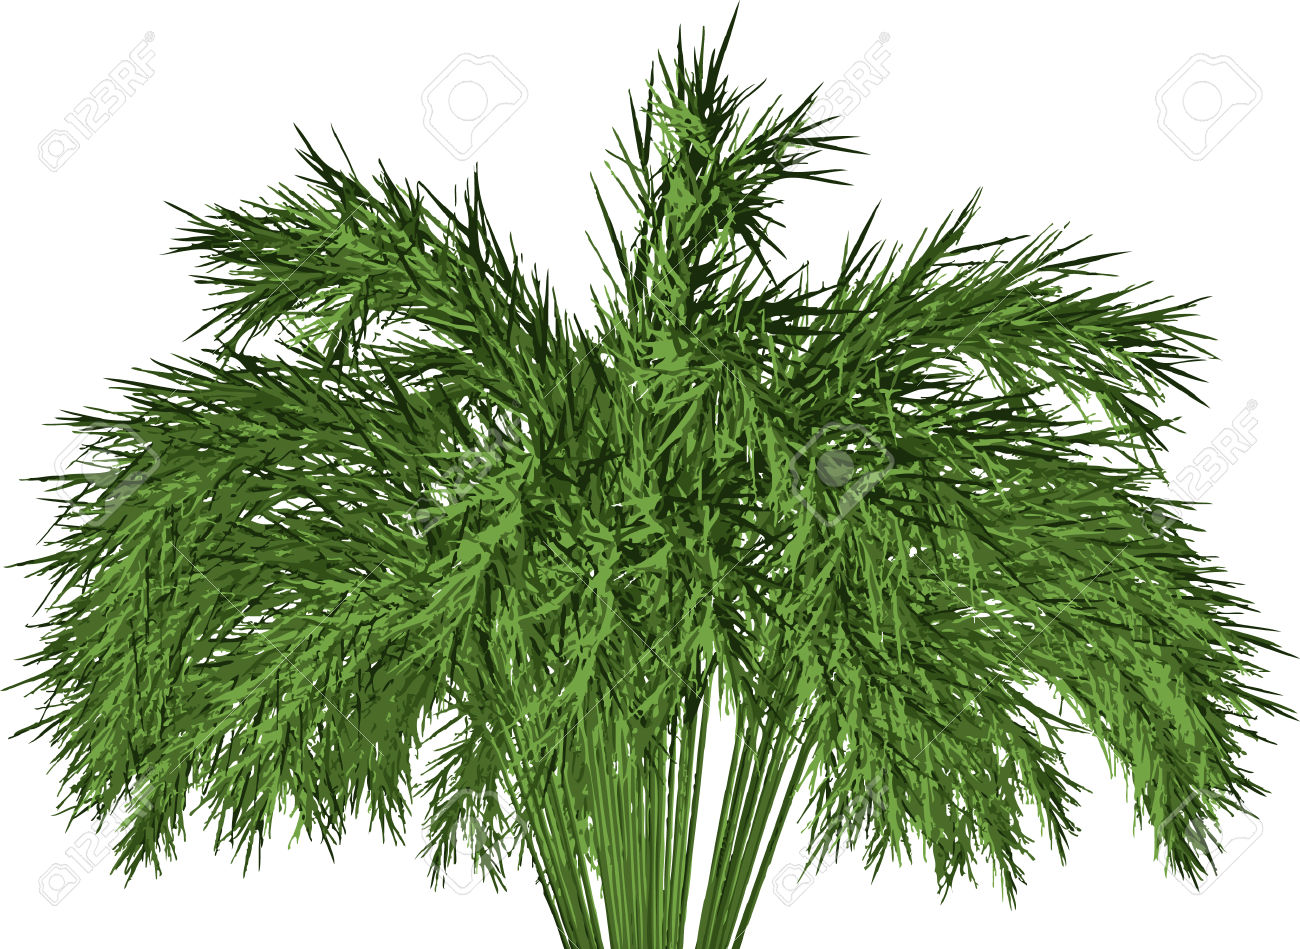 Giant Timber Bamboo: Phyllostachys Royalty Free Cliparts, Vectors.